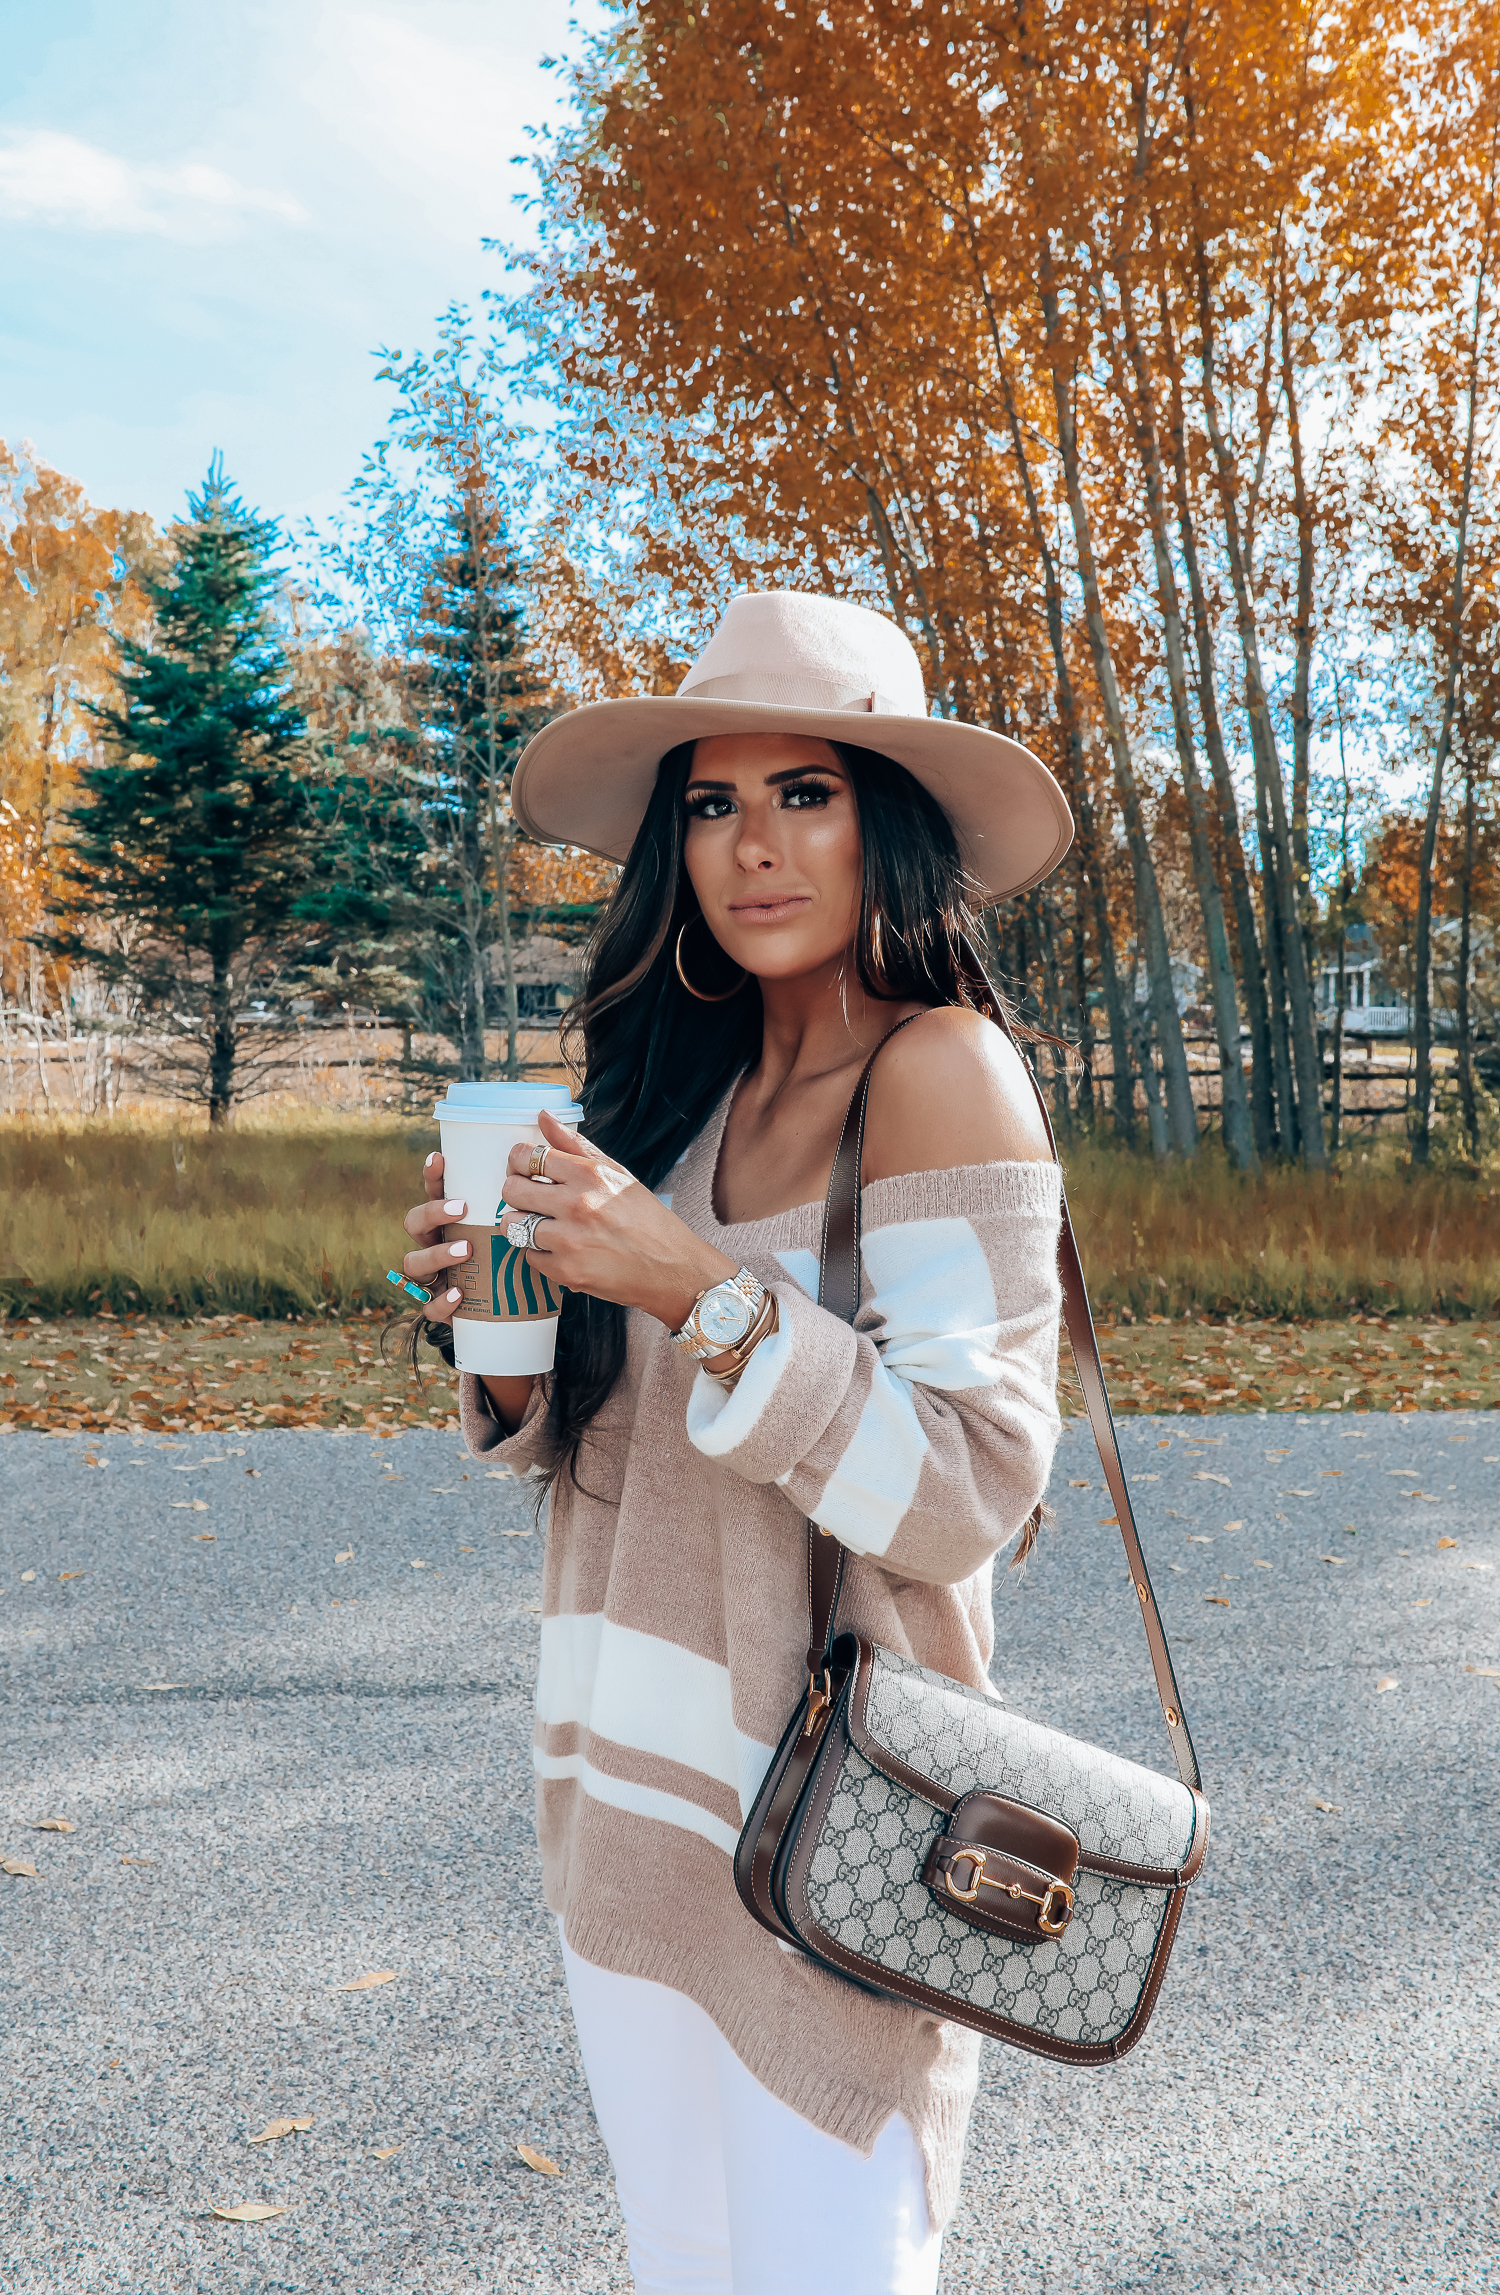 Rag and Bone White Jeans style for Fall by top US fashion blog, The Sweetest Thing: image of a woman wearing Rag and Bone white denim jeans, a Red Dress Boutique off the shoulder striped sweater, Gianni Bini boots, Gucci 1955 shoulder bag, Brixton Panama hat, Rolex watch, Cartier bracelets, Argento Vivo earrings, and a Free People ring | gucci 1055 horsebit bag, fall fashion 2019 pinterest, emily ann gemma